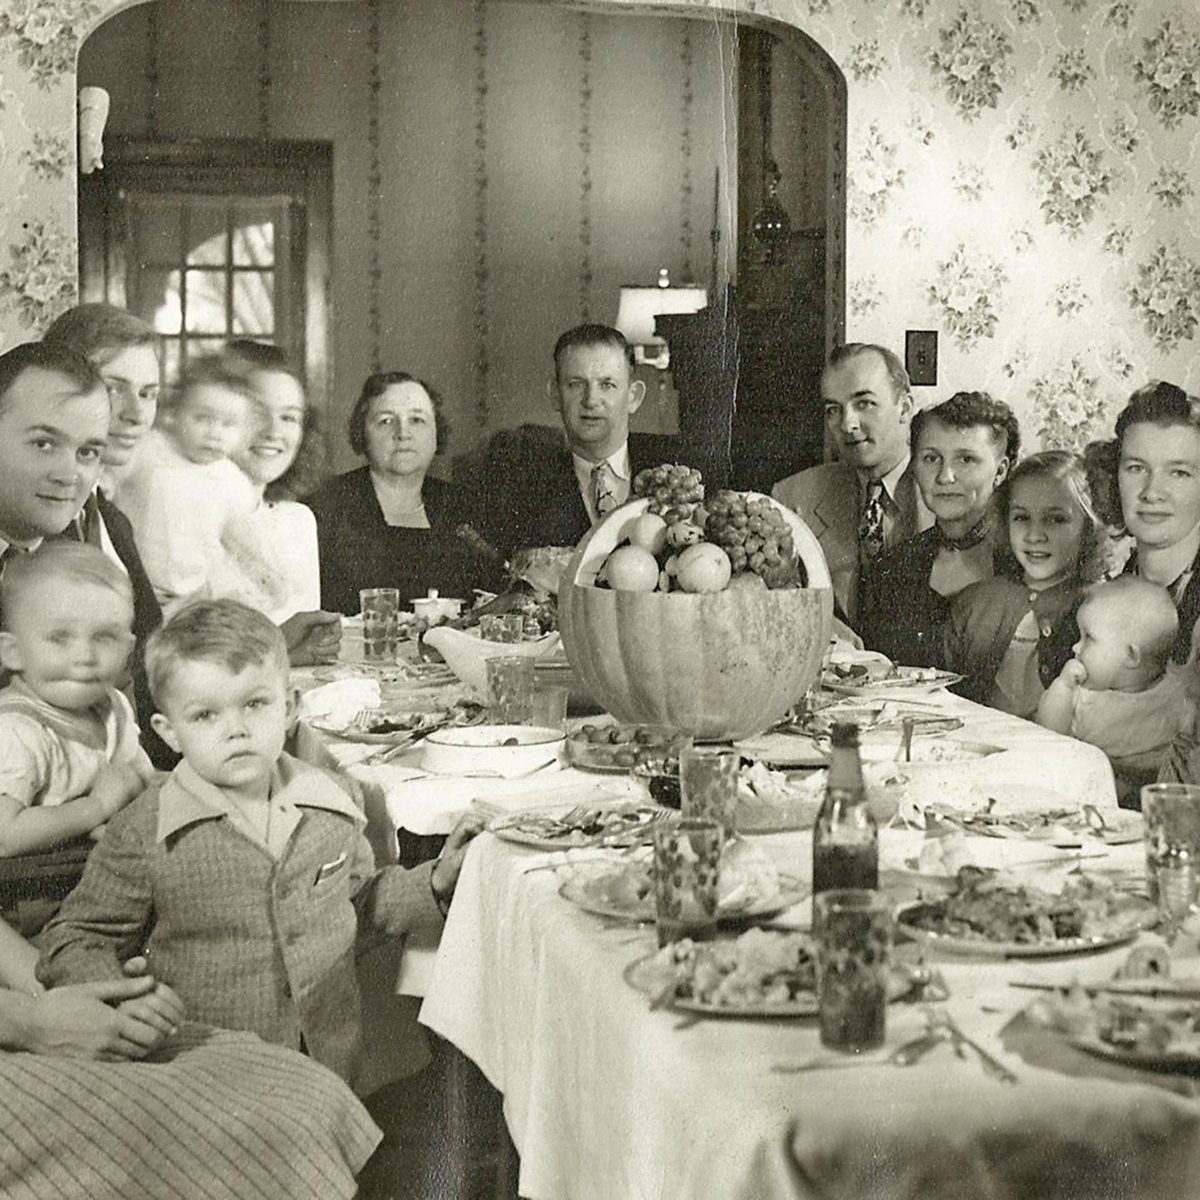 a very large family sitting around the table during thanksgiving dinner, looking at the camera, 1930s